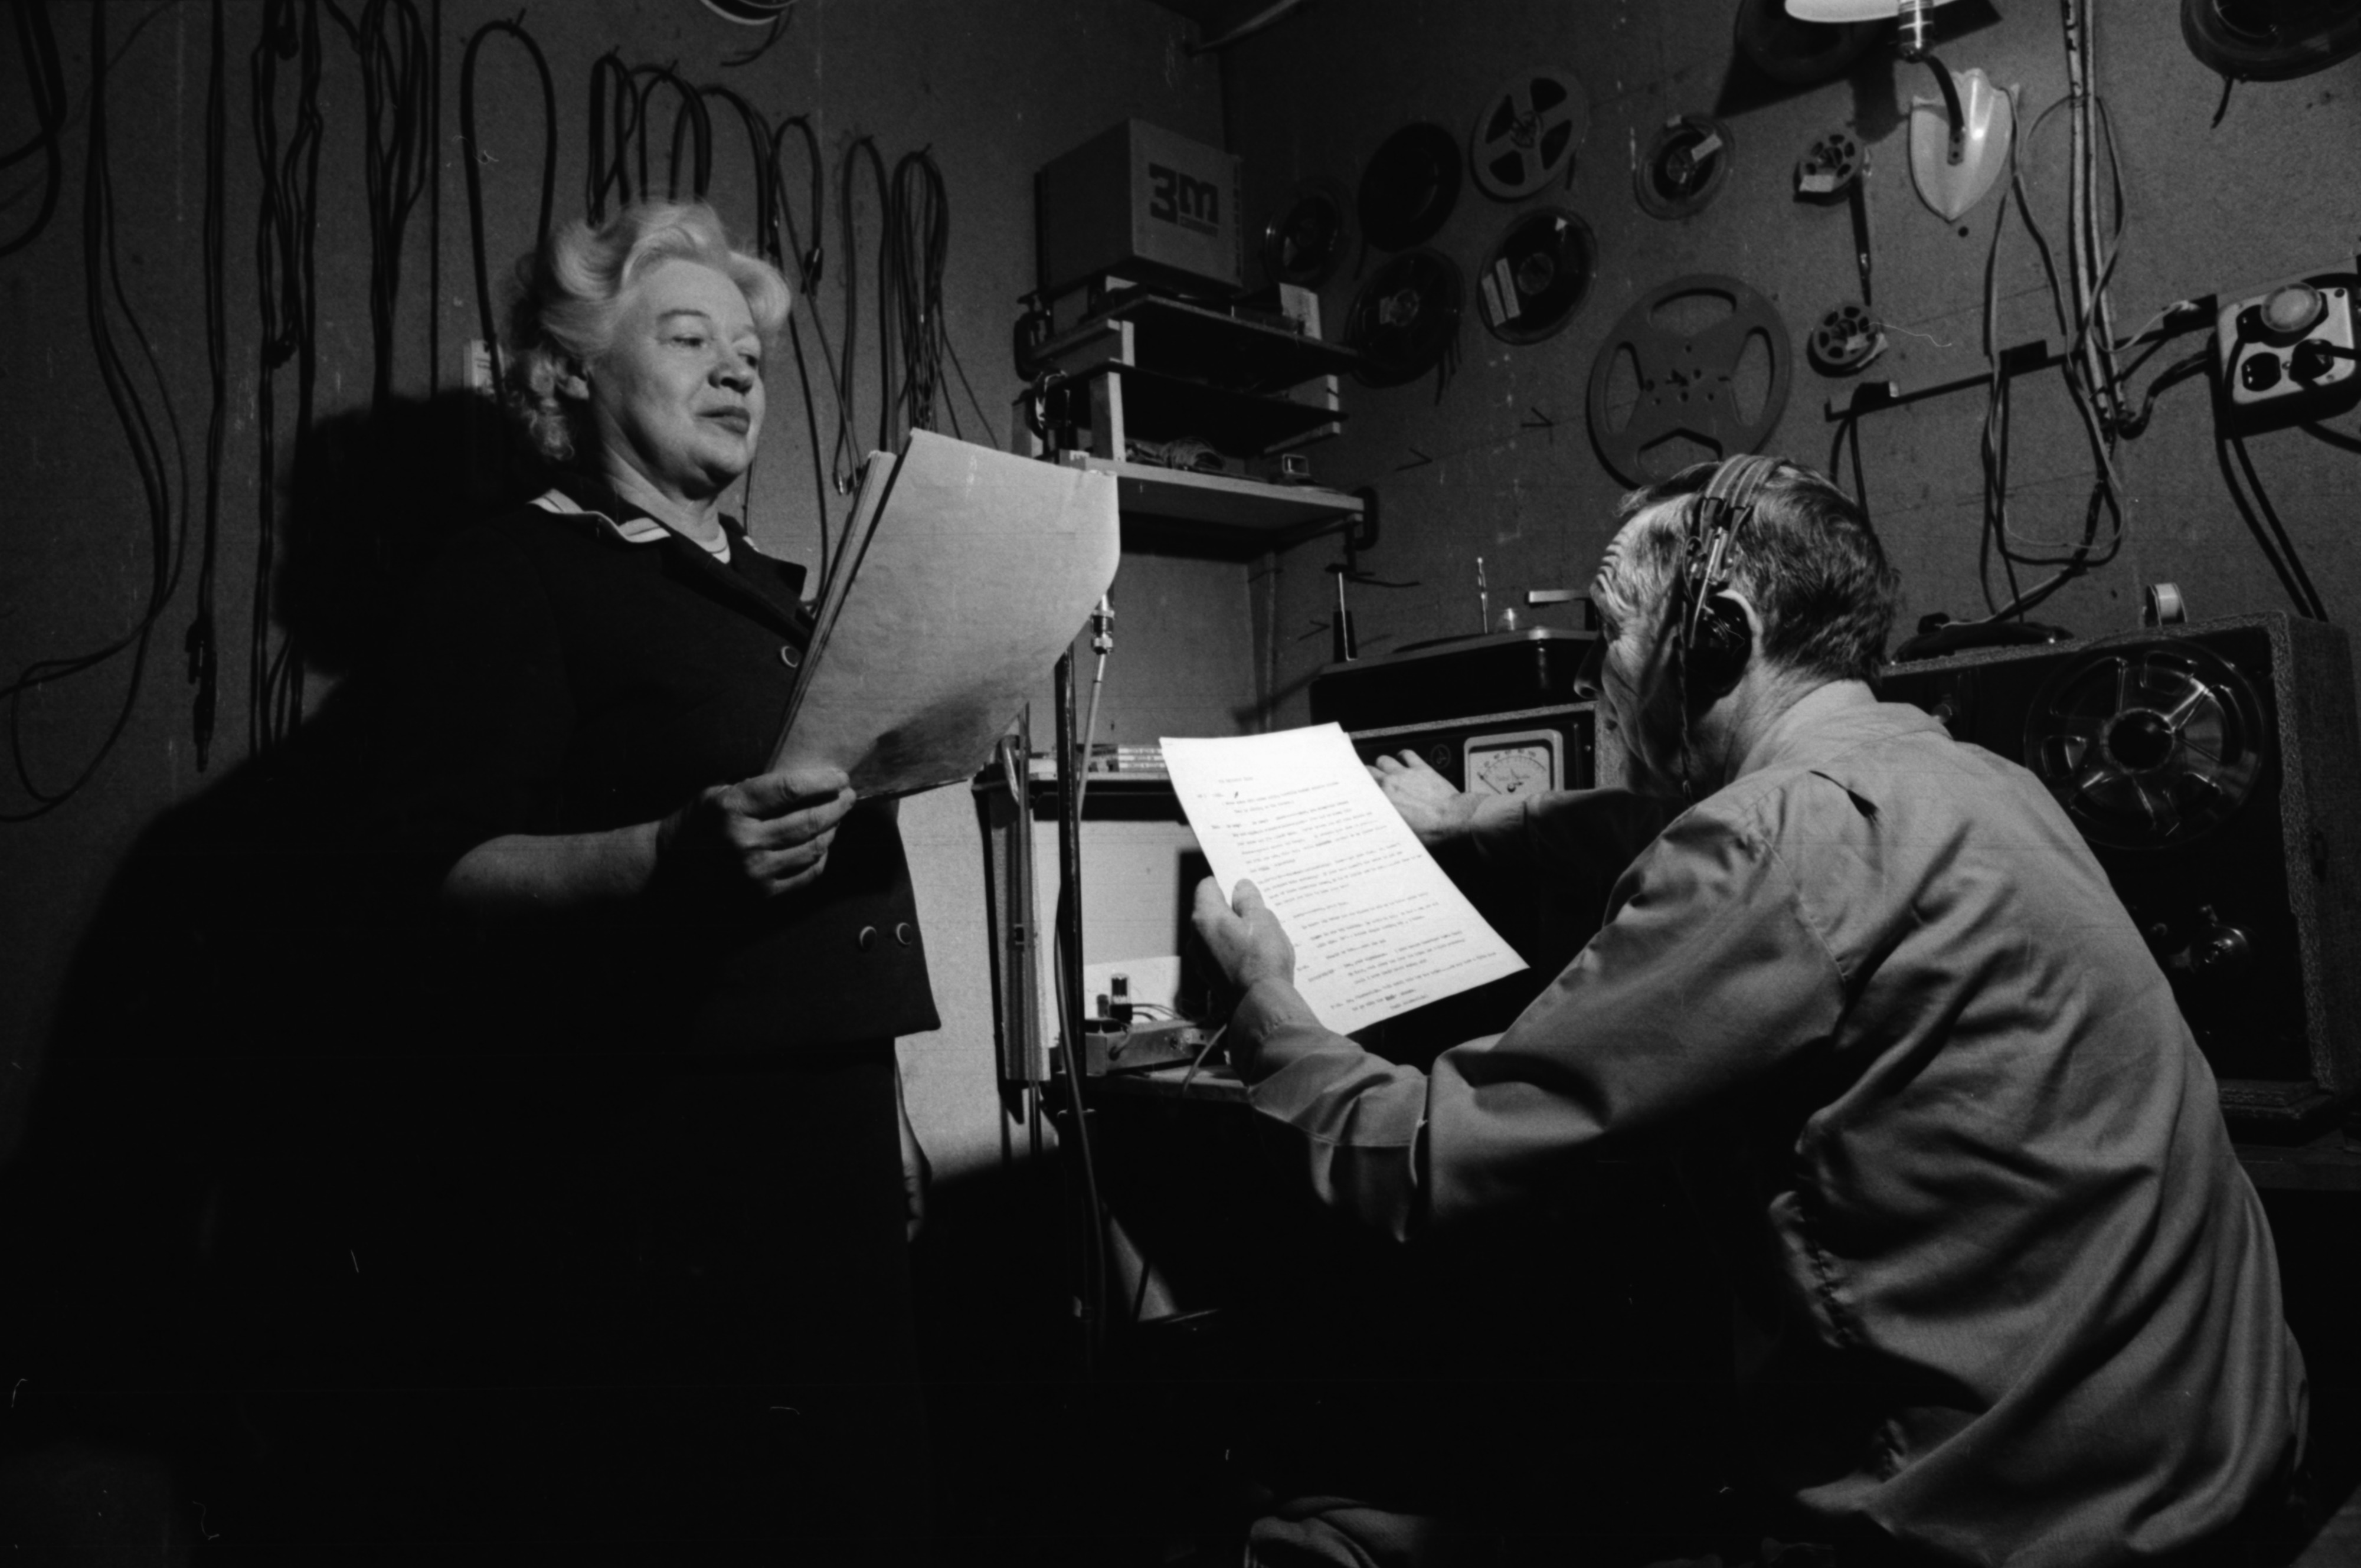 Meredith and Thyra Bixby record audio for their puppet show, February 1969 image